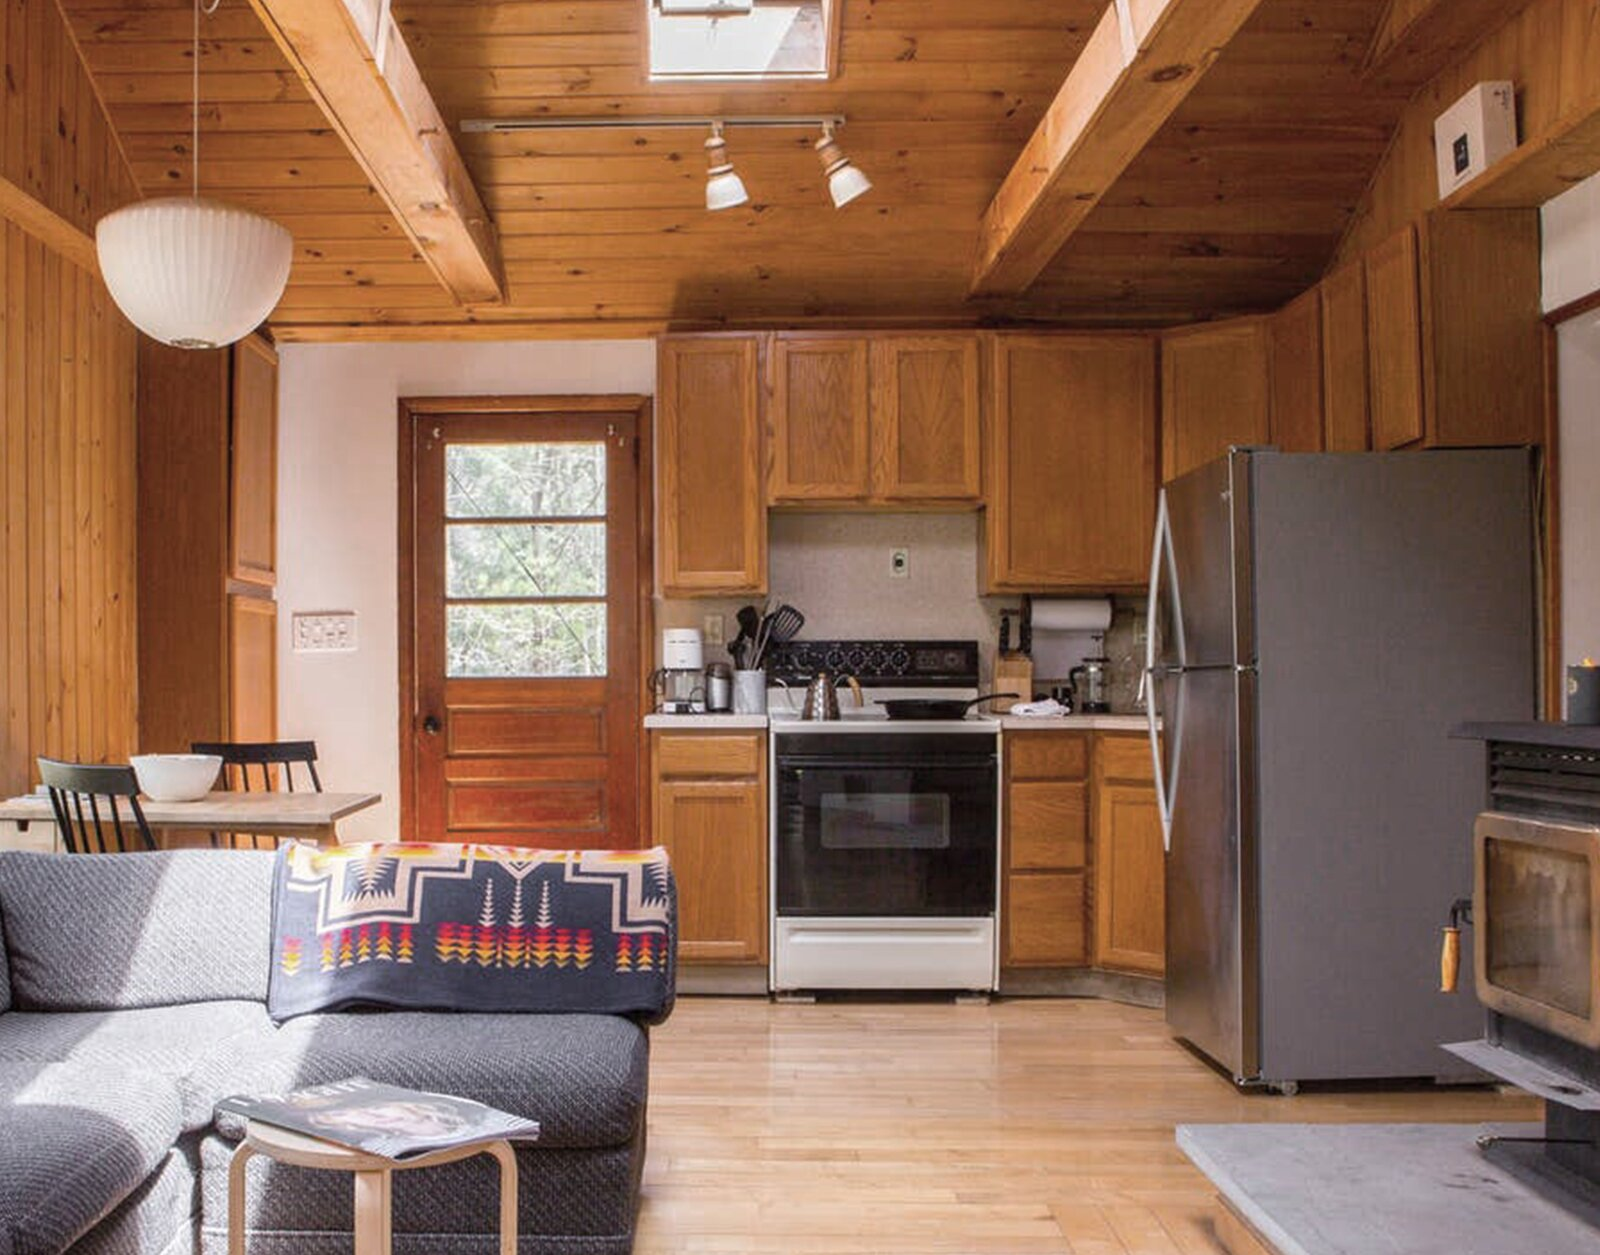 """Kitchen, Refrigerator, Wall Oven, Microwave, Cooktops, Light Hardwood Floor, Wood Cabinet, and Dishwasher Before: The kitchen felt cramped with clunky appliances and lots of wood. """"It was really overwhelming,"""" says Lauren.  Photo 7 of 16 in Before & After: A Creative Couple Revive a 1950s Cabin in the Catskills"""